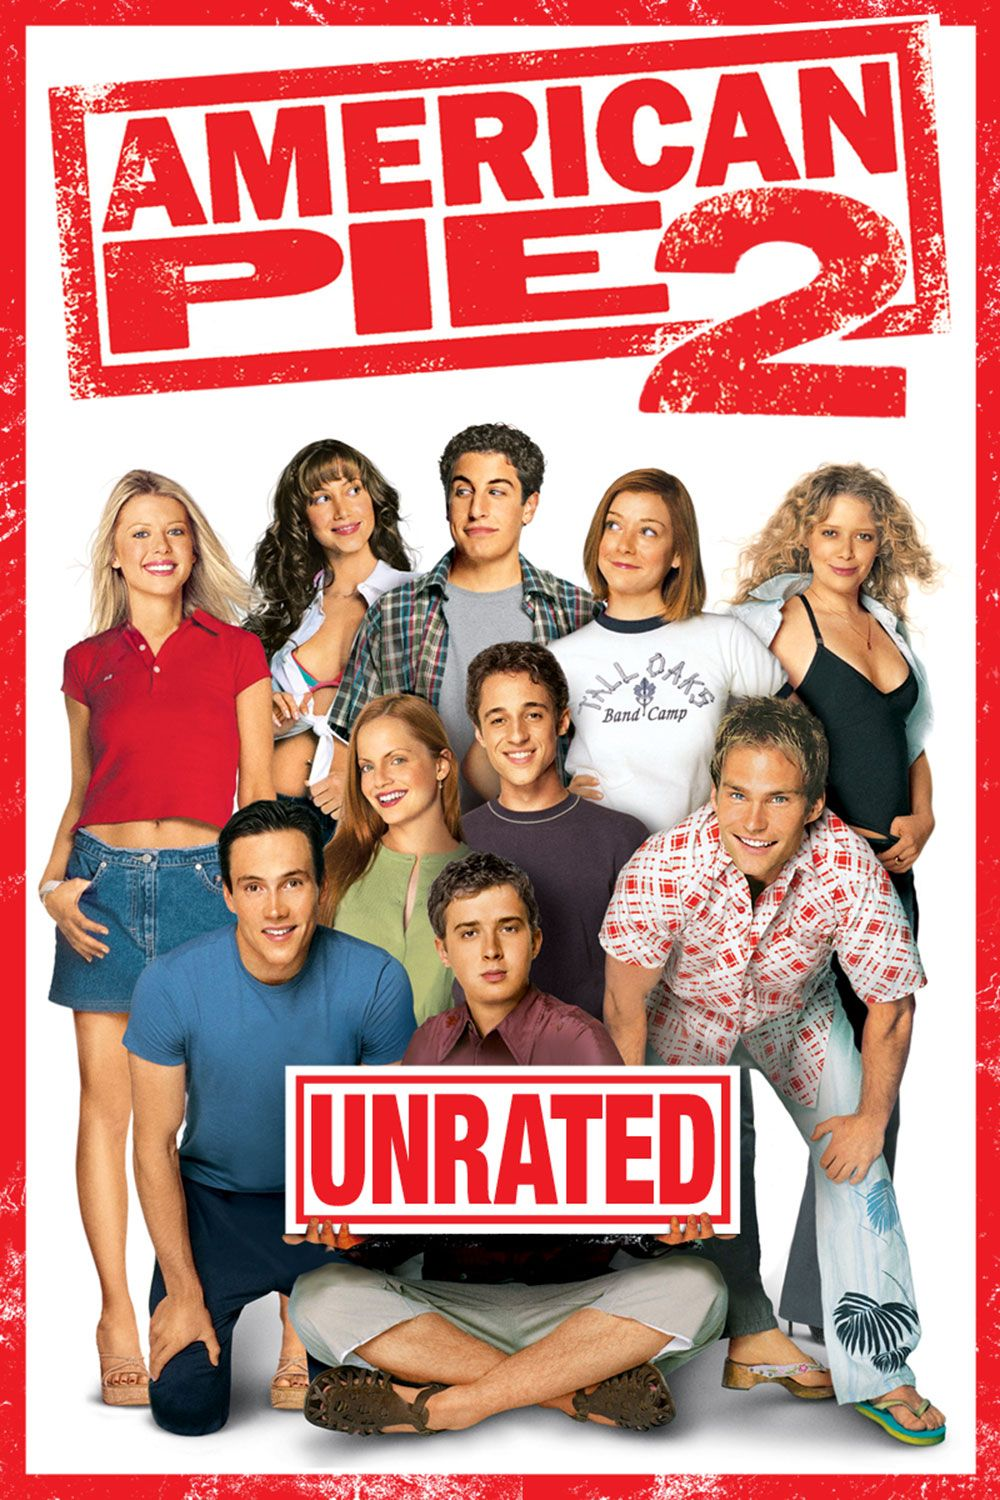 American Pie Presents Beta House Full Movie american pie 1 - google zoeken | american pie, american pie